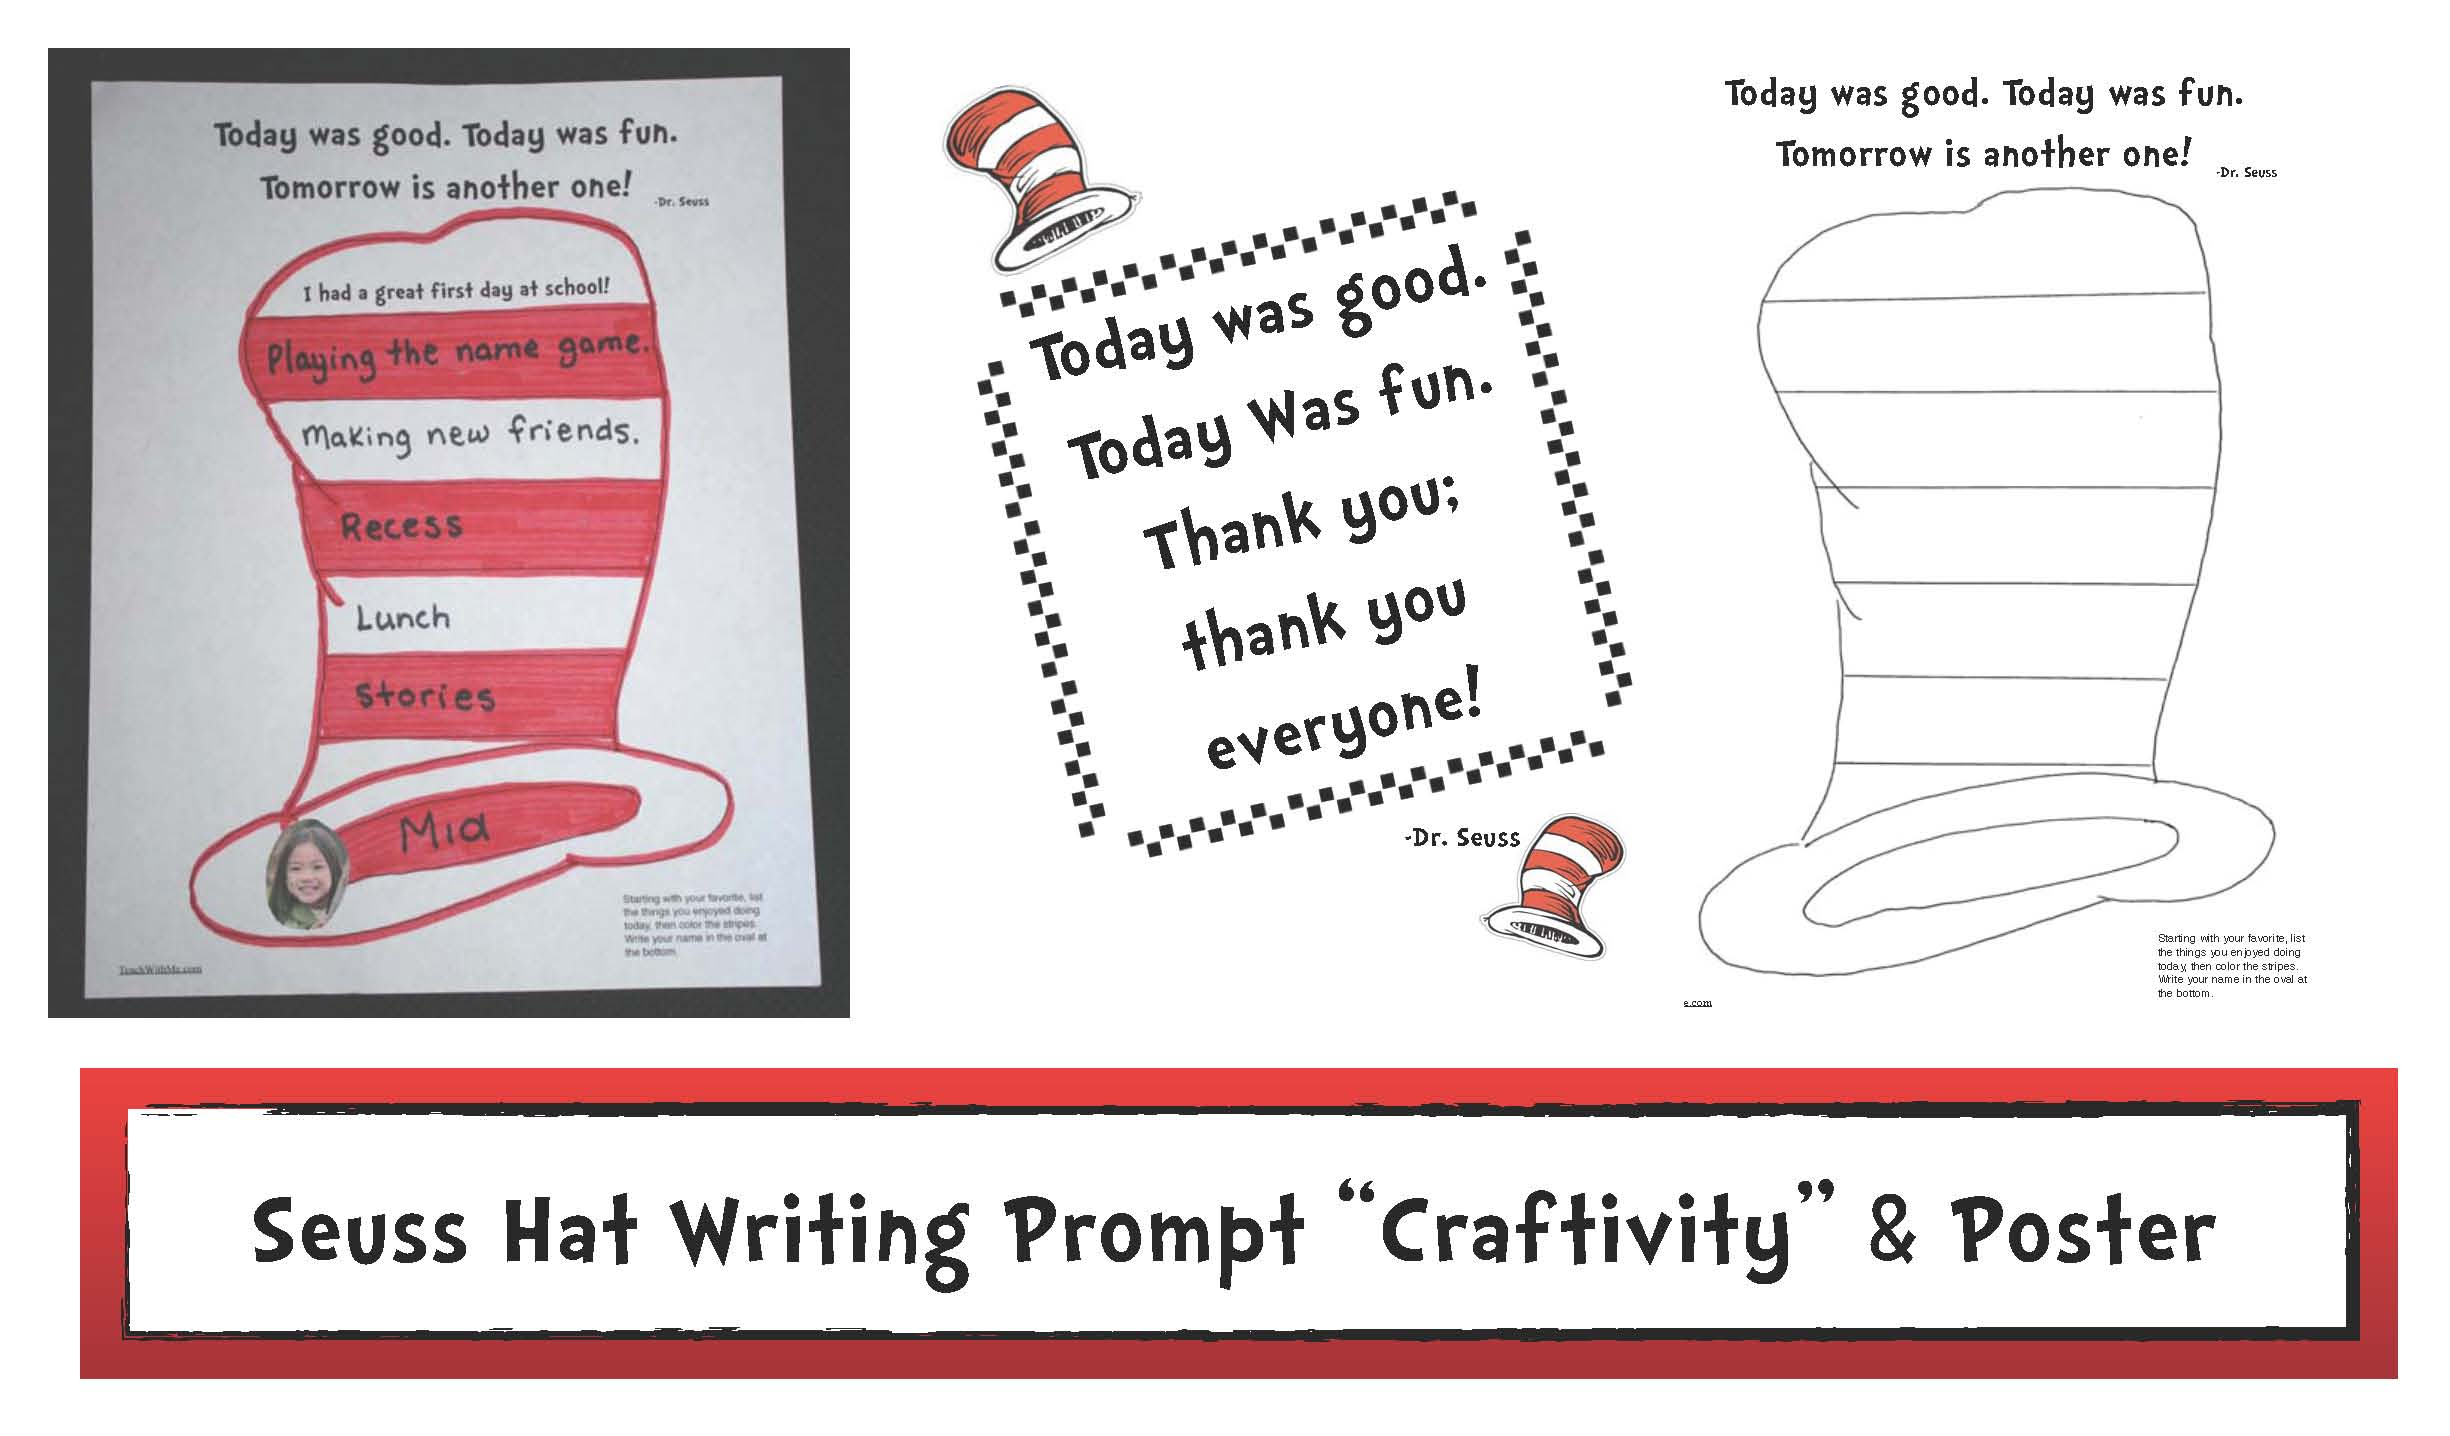 seuss activities, dr seuss activities, ideas for dr seuss, writing prompts for seuss, first day of school writing prompts, first day of school activities, 1st day ideas, cat in the hat ideas, seuss hat pattern, seuss hat template